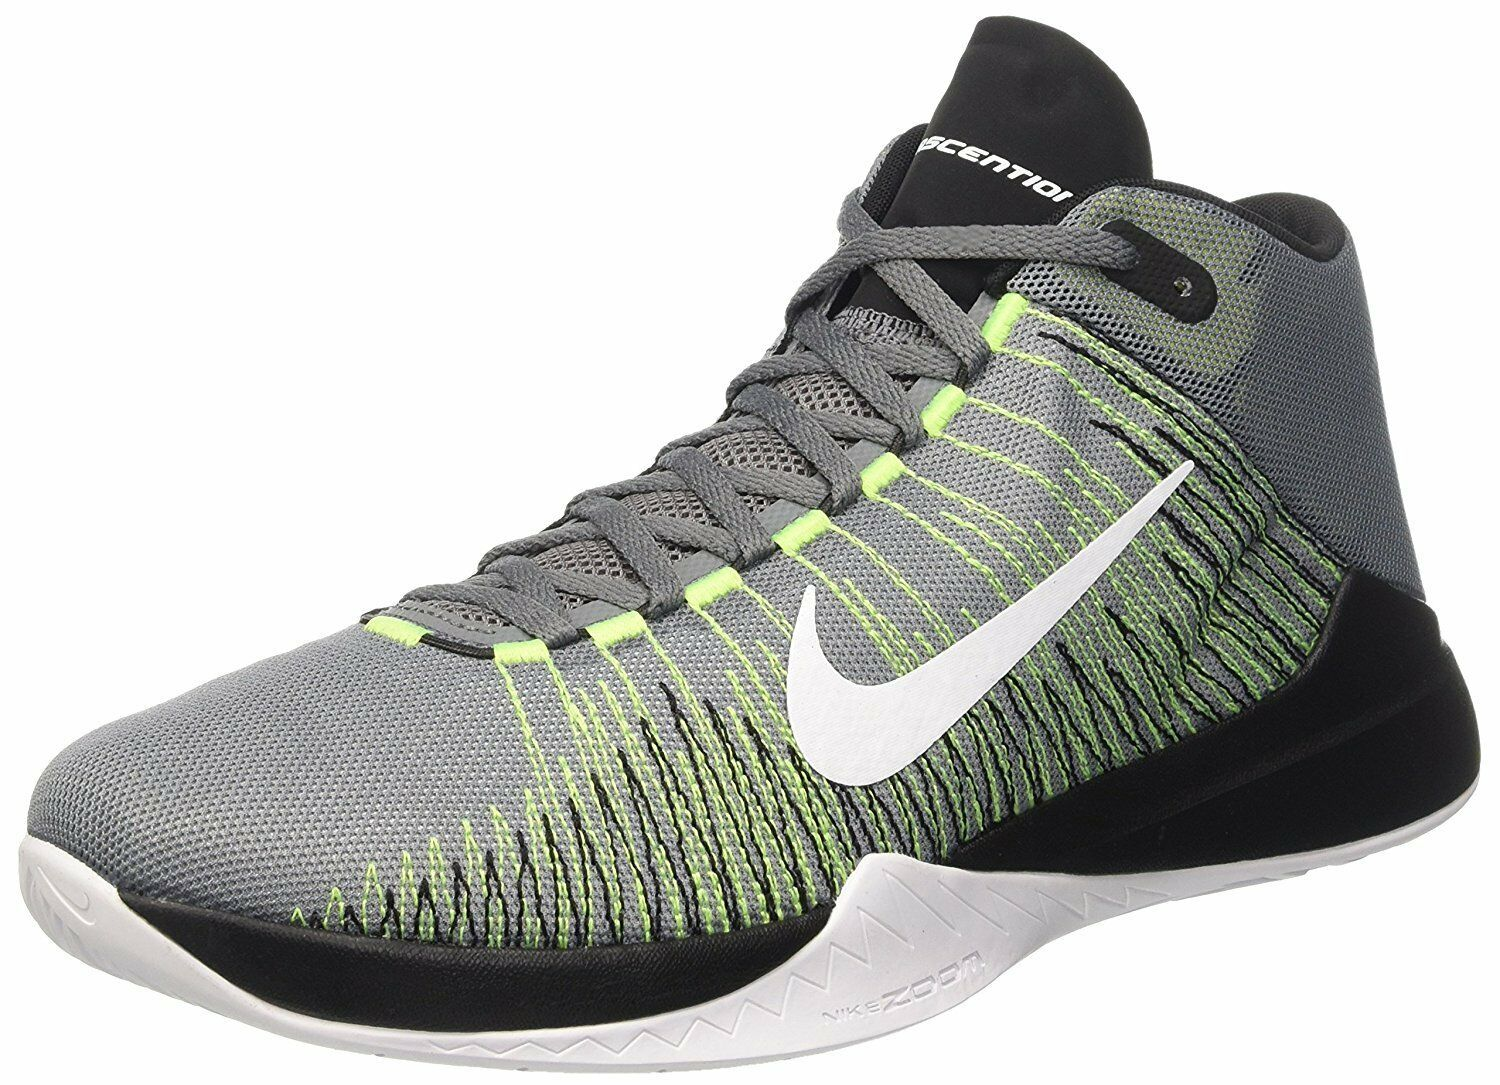 NIKE Zoom Ascention Mens Basketball shoes